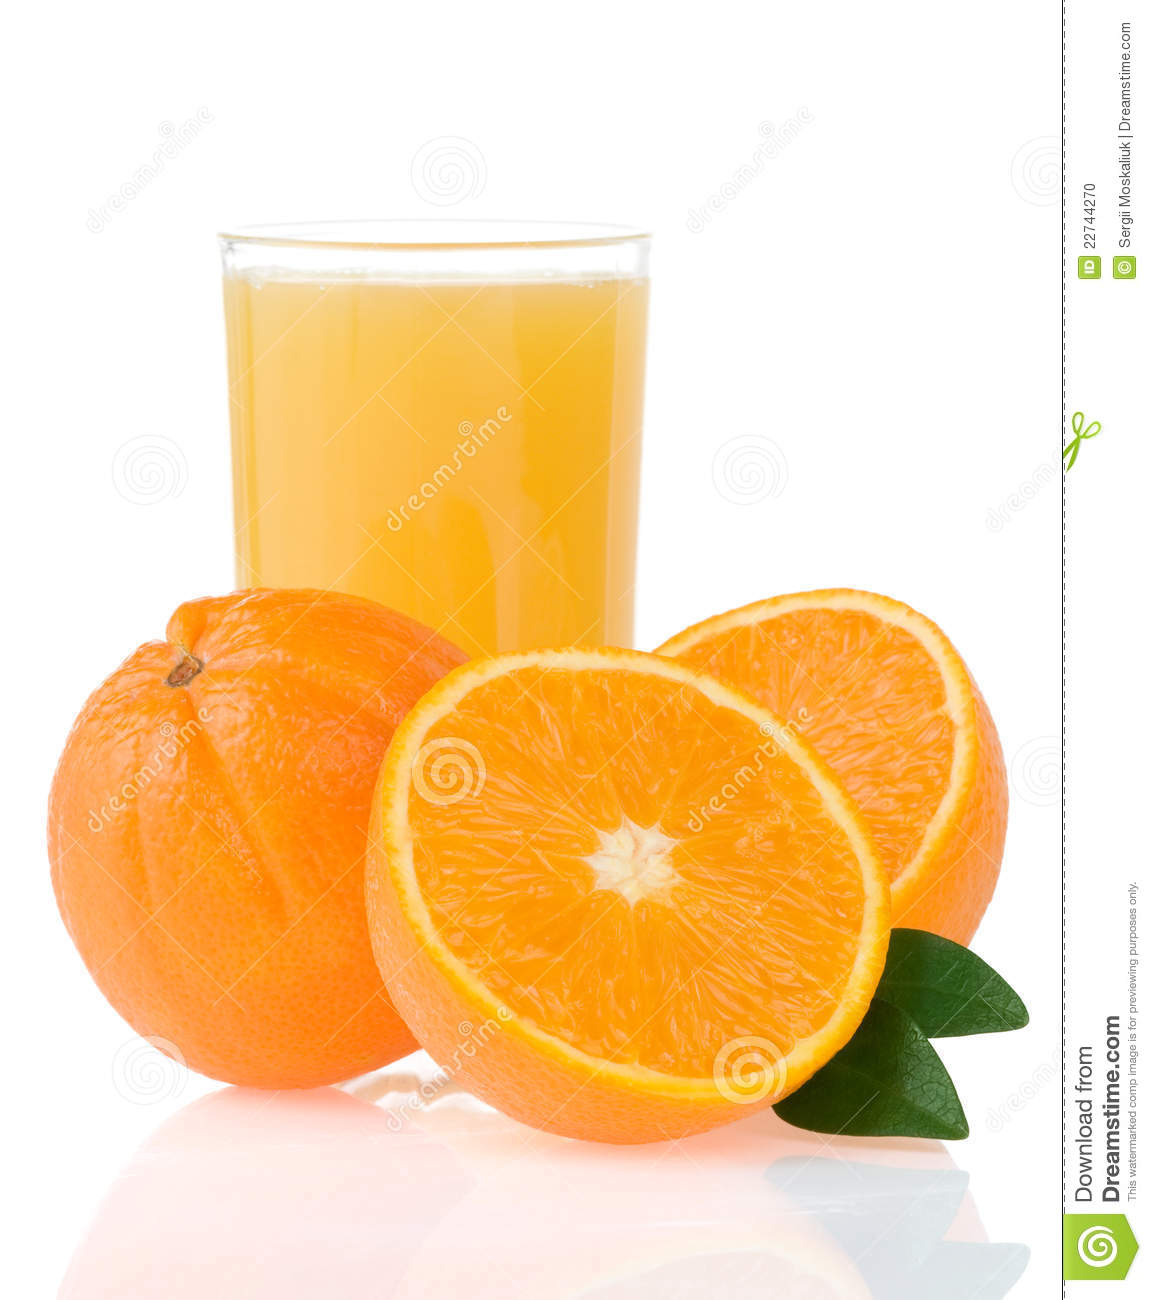 Jus d orange en glace et parts sur le blanc